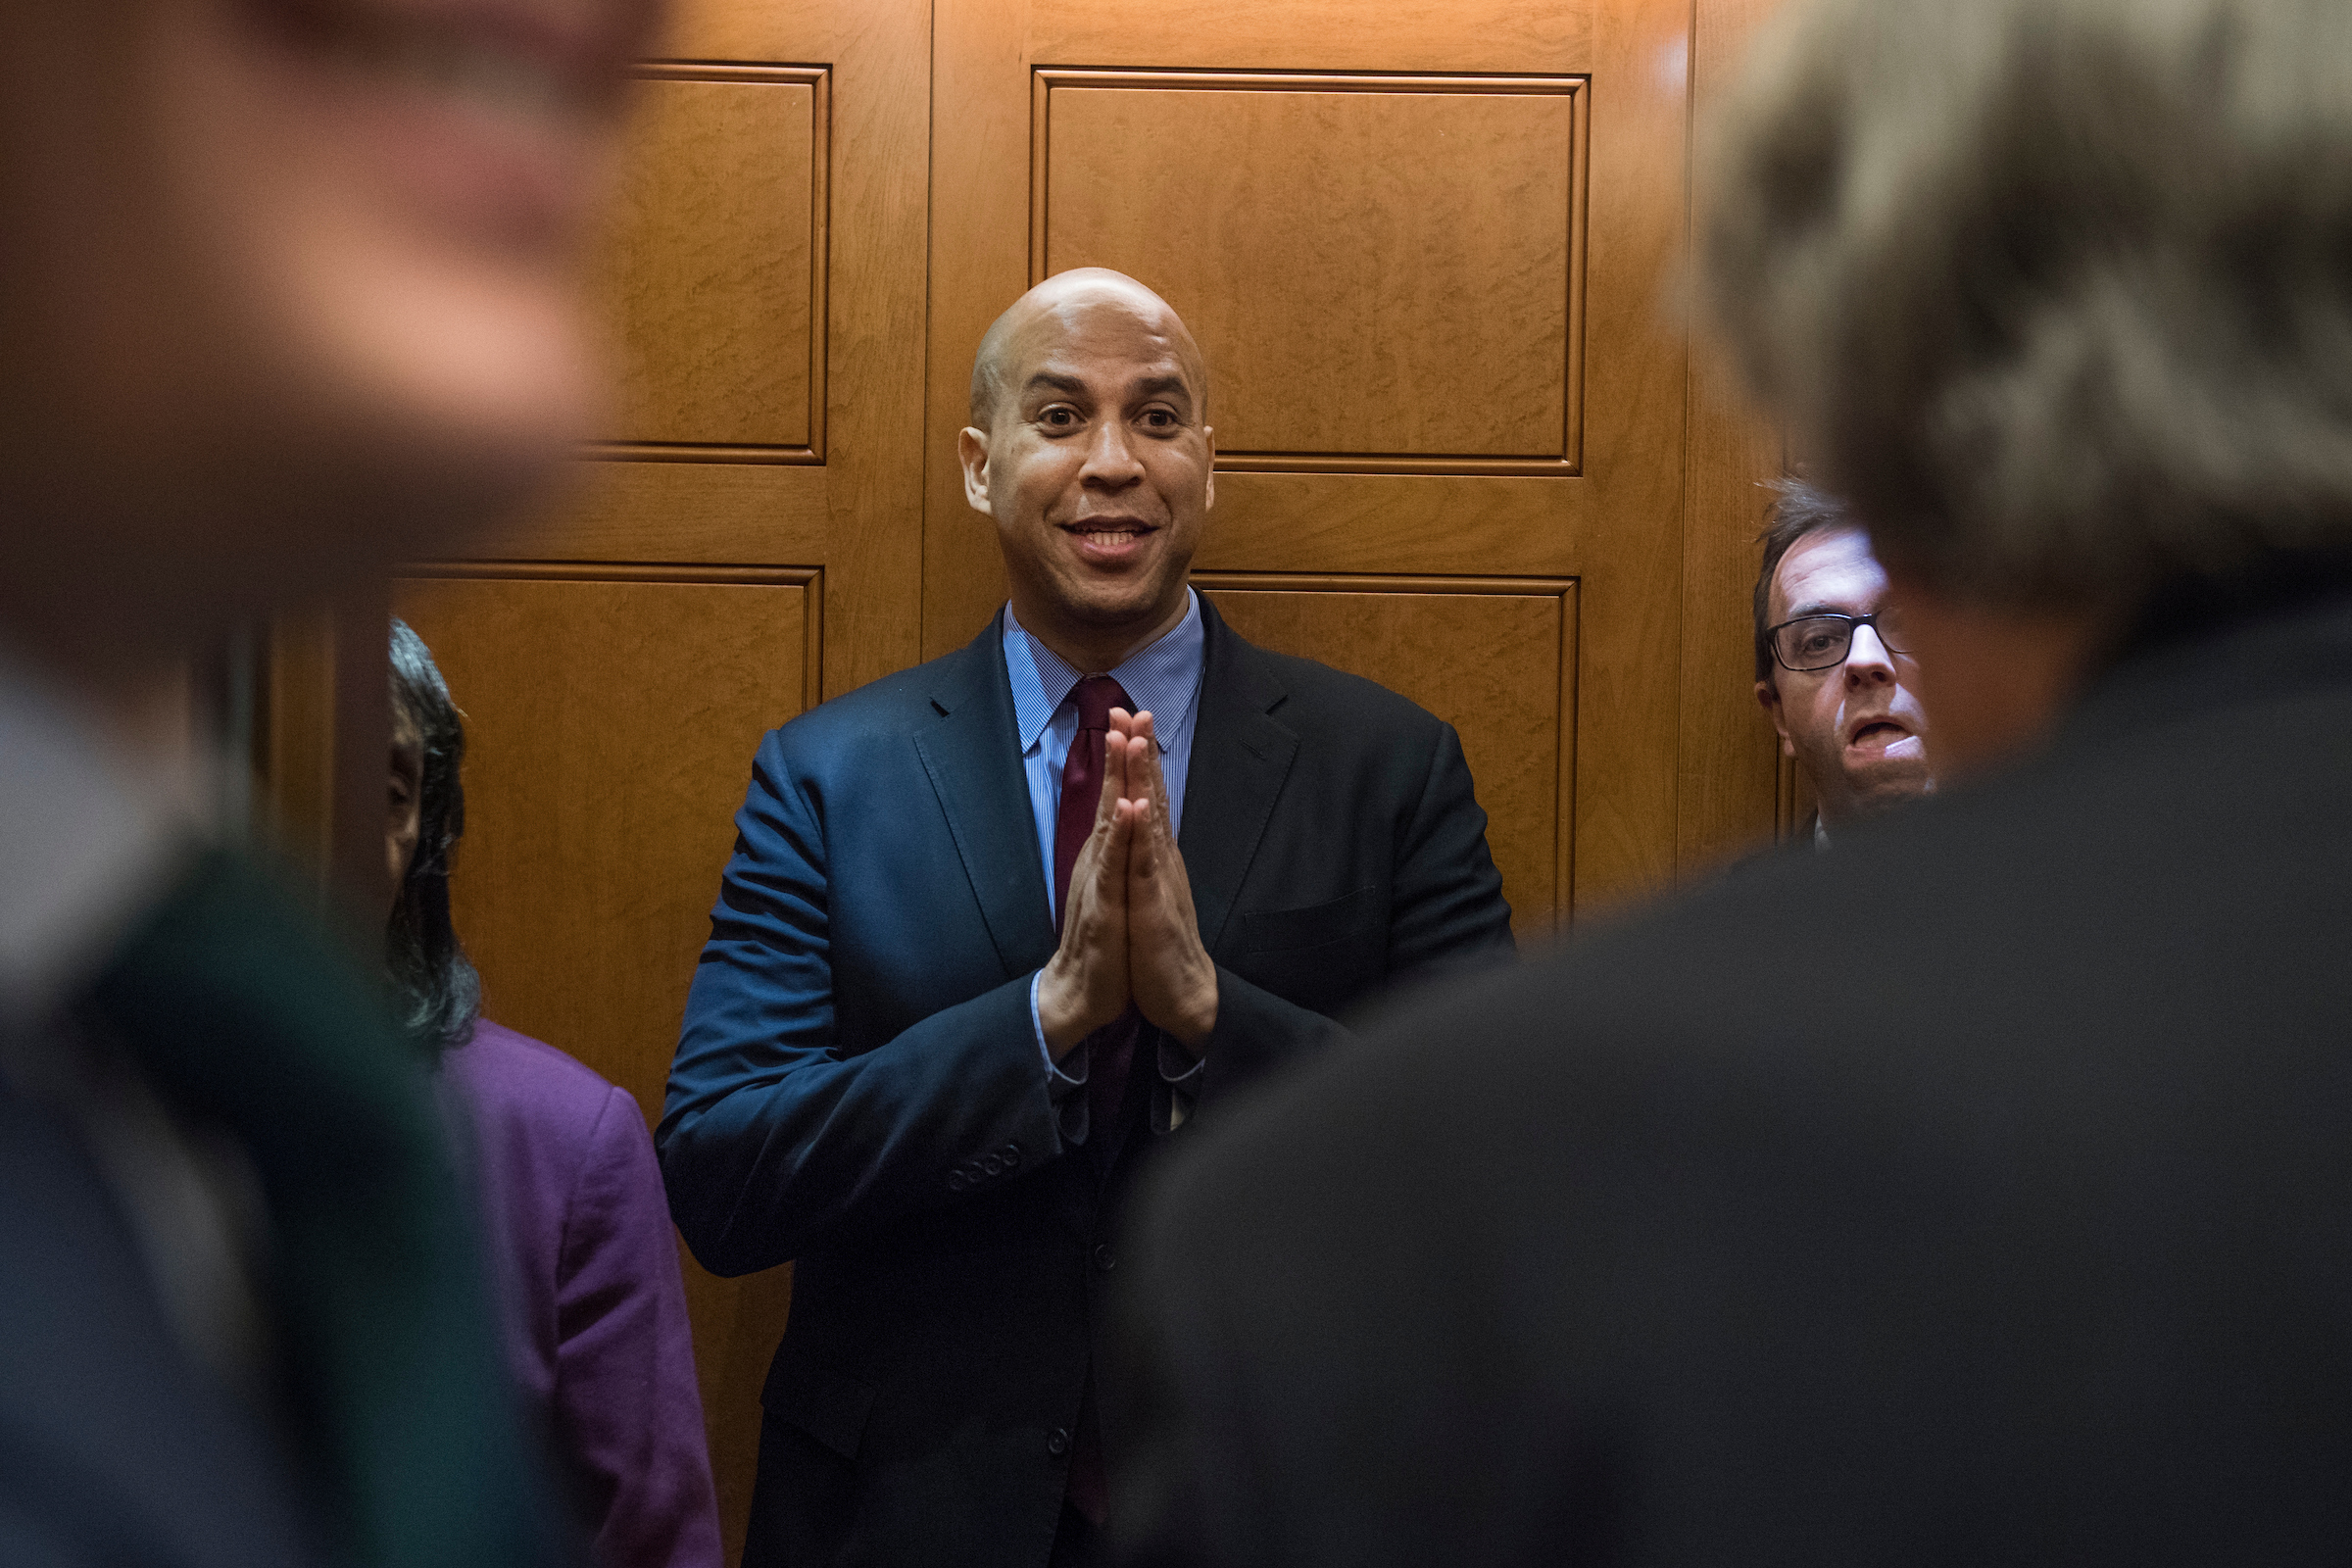 Sen. Cory Booker, D-N.J., boards an elevator before a vote in the Capitol on January 18, 2018. (Photo By Tom Williams/CQ Roll Call)